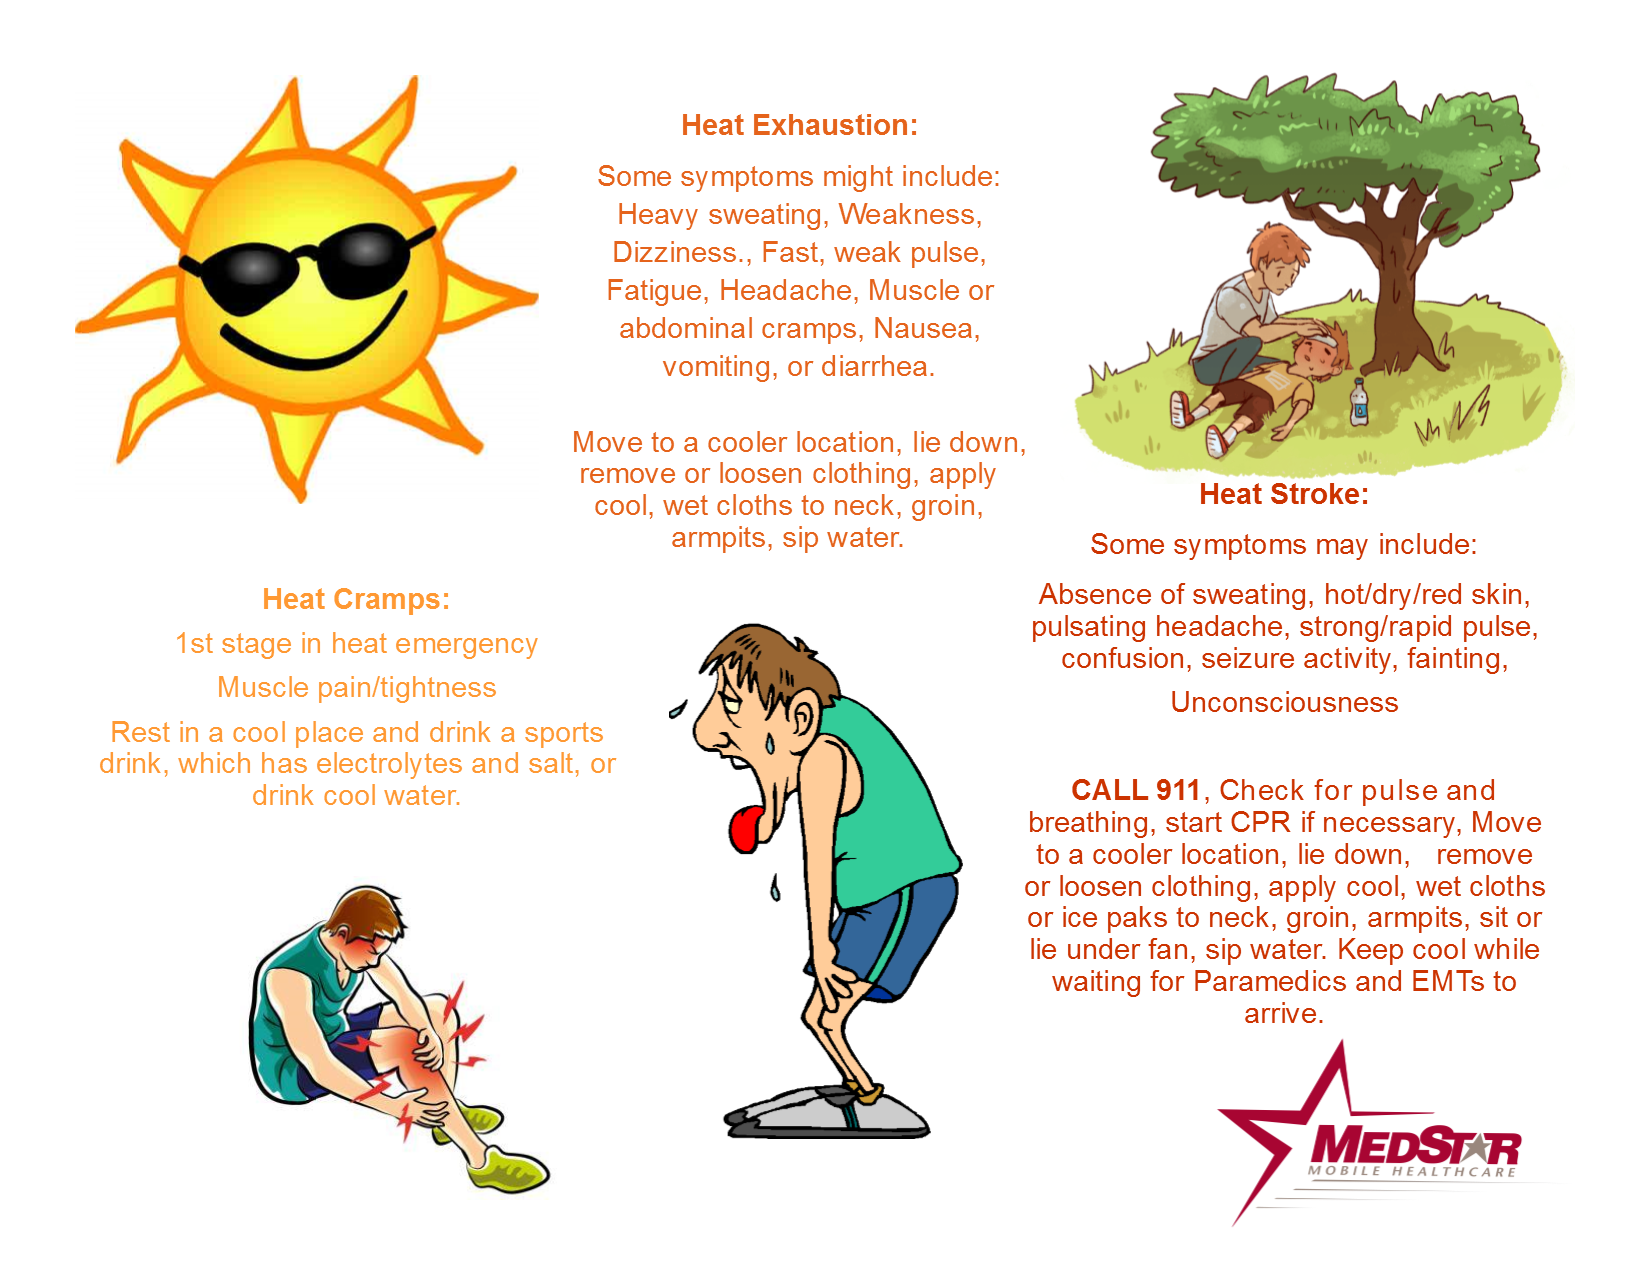 Media Outlets and MedStar Partner on Tips to Beat the Heat